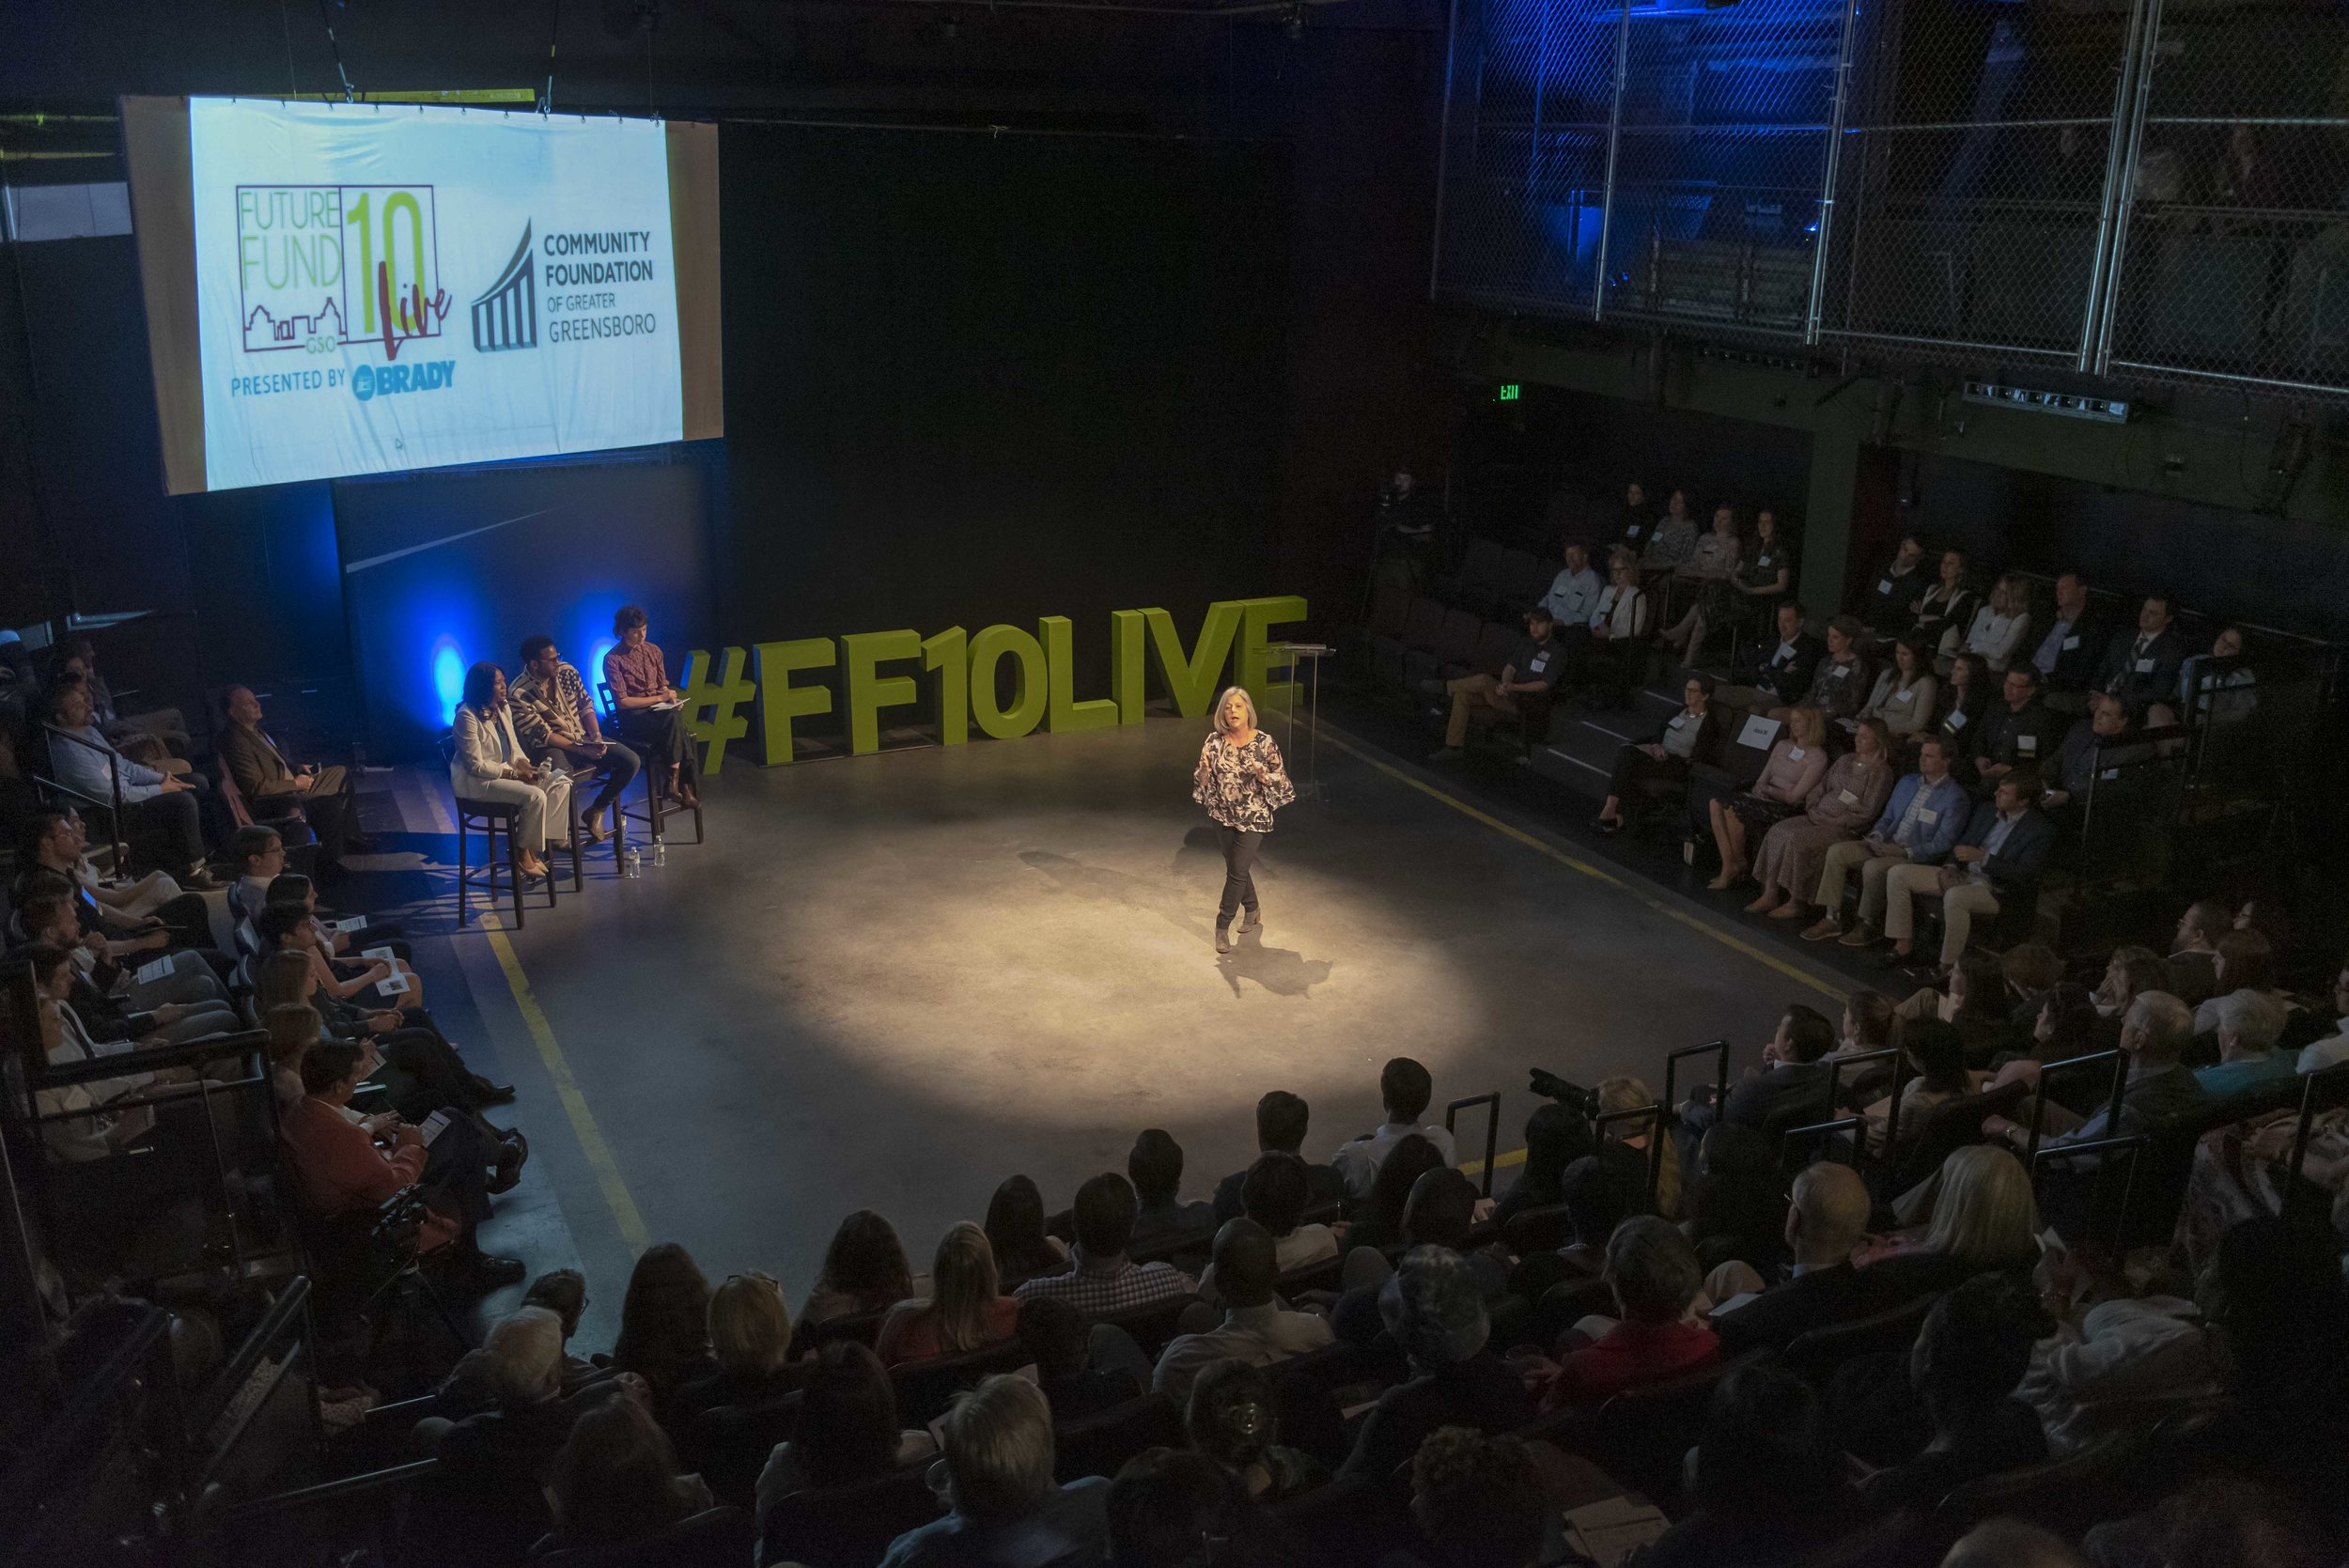 Nancy Micca of Family Support Network gives her pitch at FF10LIVE 2019